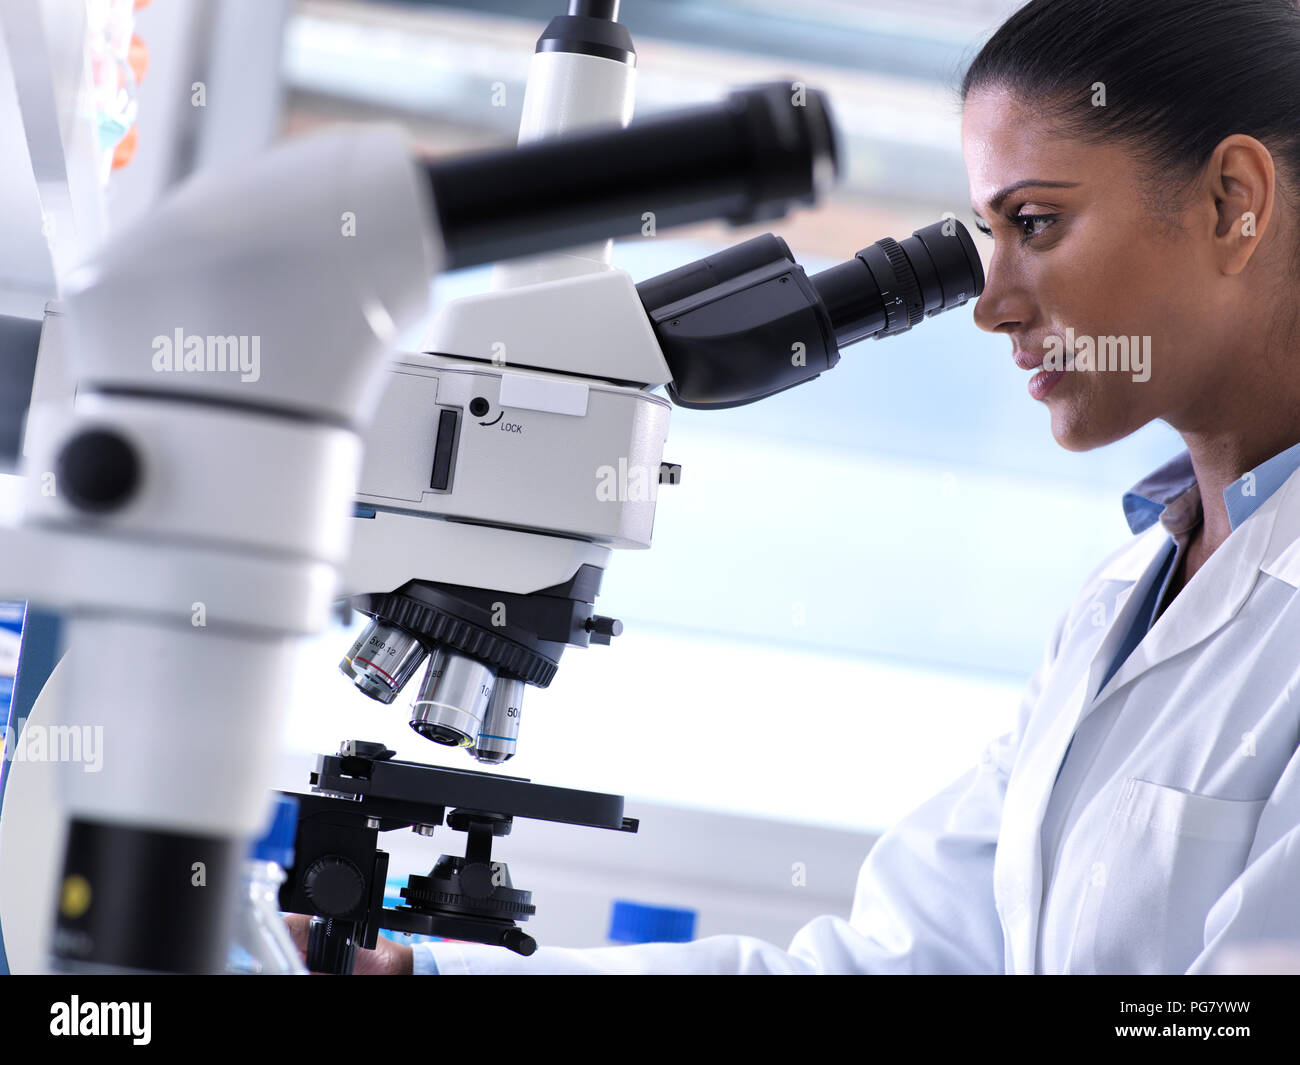 Biotechnology Research, female scientist examining a specimen under a microscope in the laboratory - Stock Image